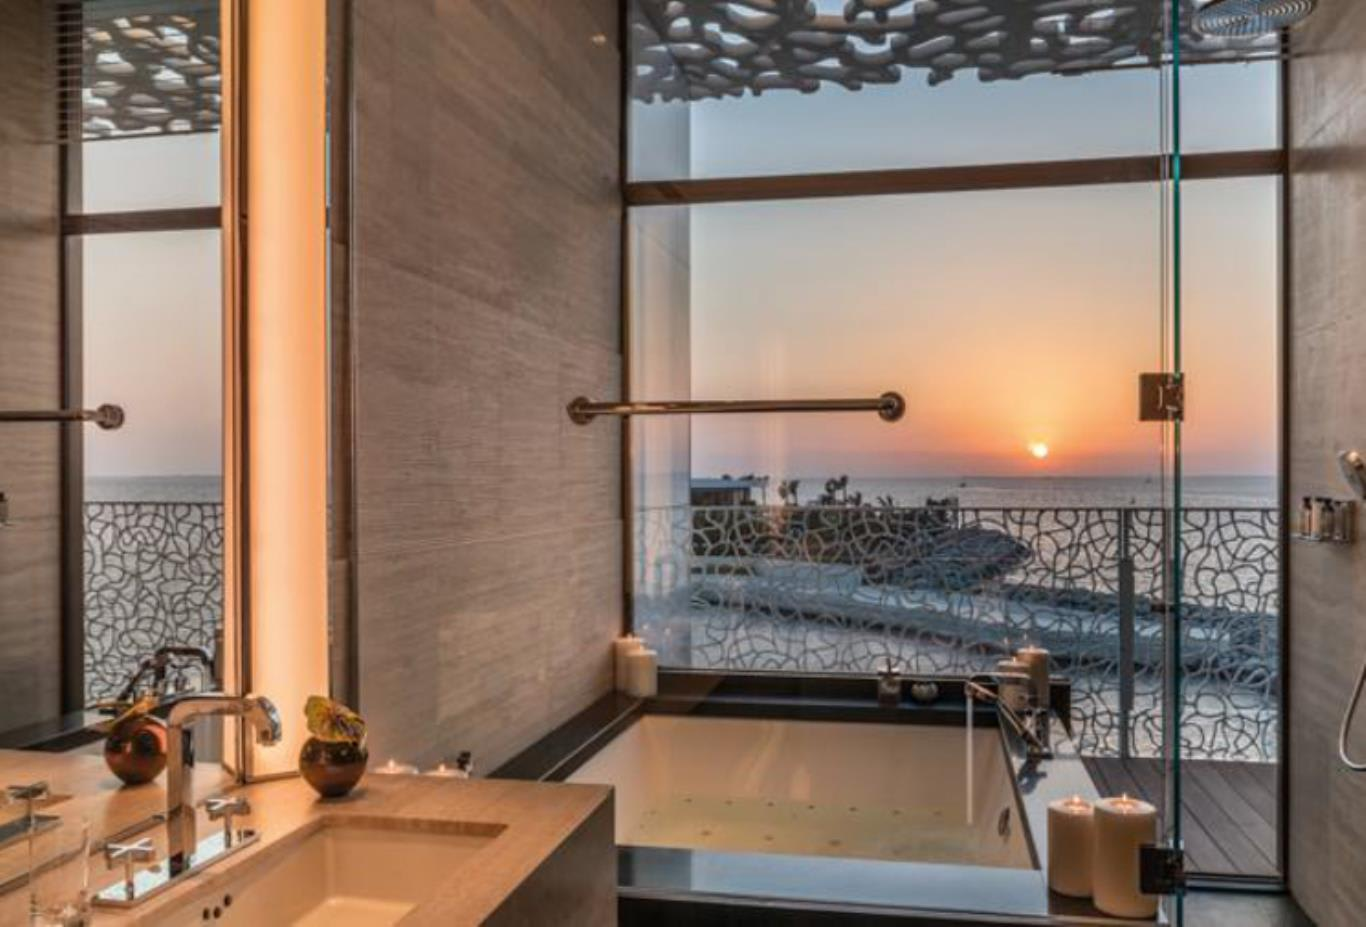 Deluxe Suite bathroom view